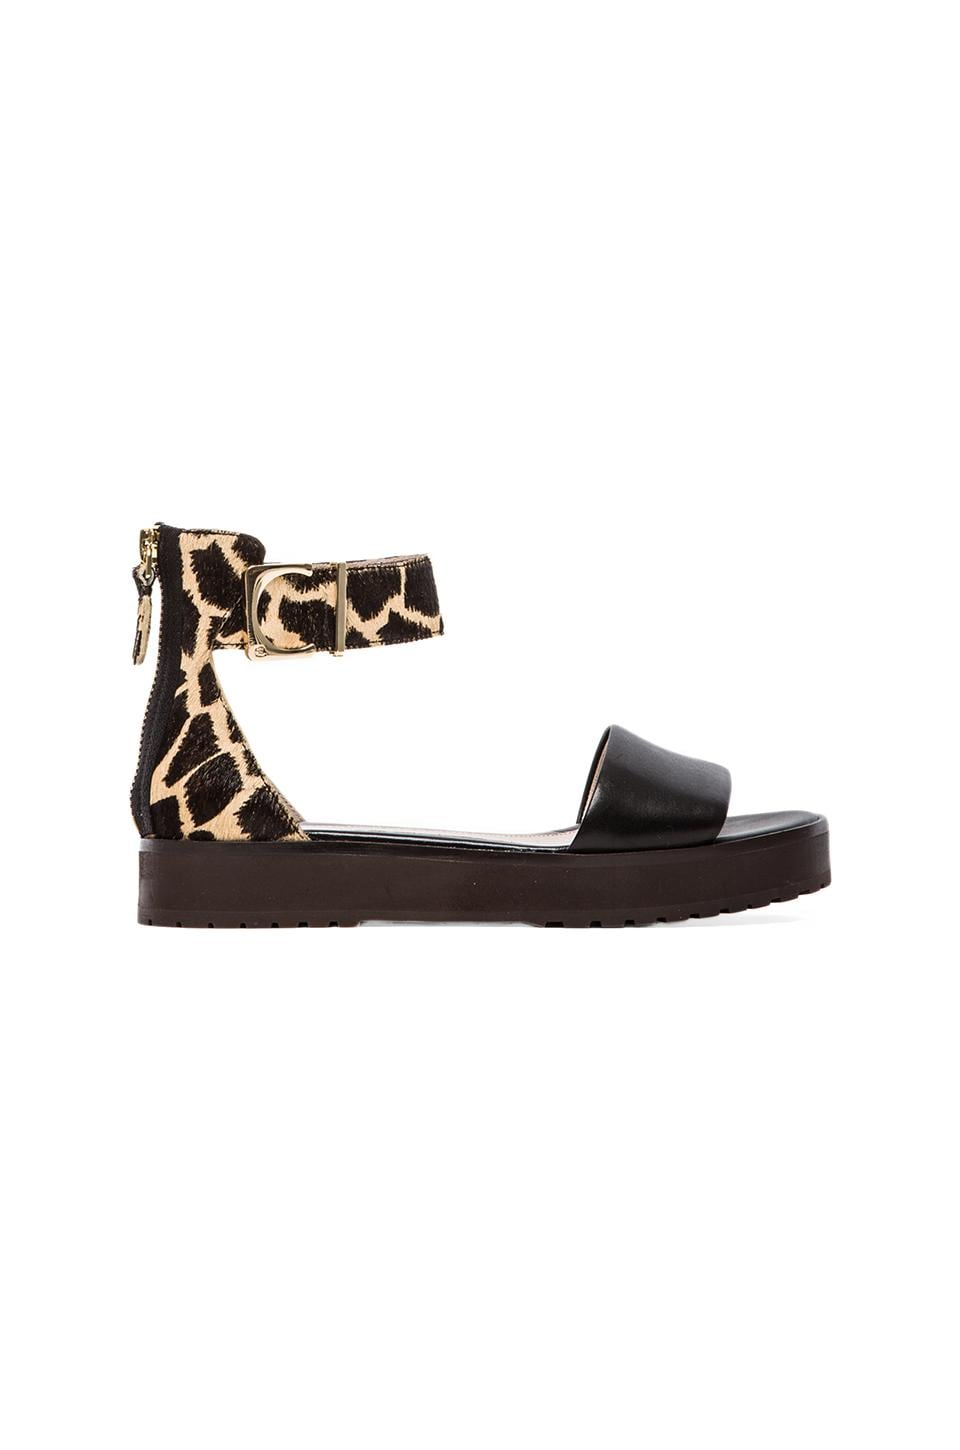 DEREK LAM 10 CROSBY Dyls Sandal with Calf hair in Black